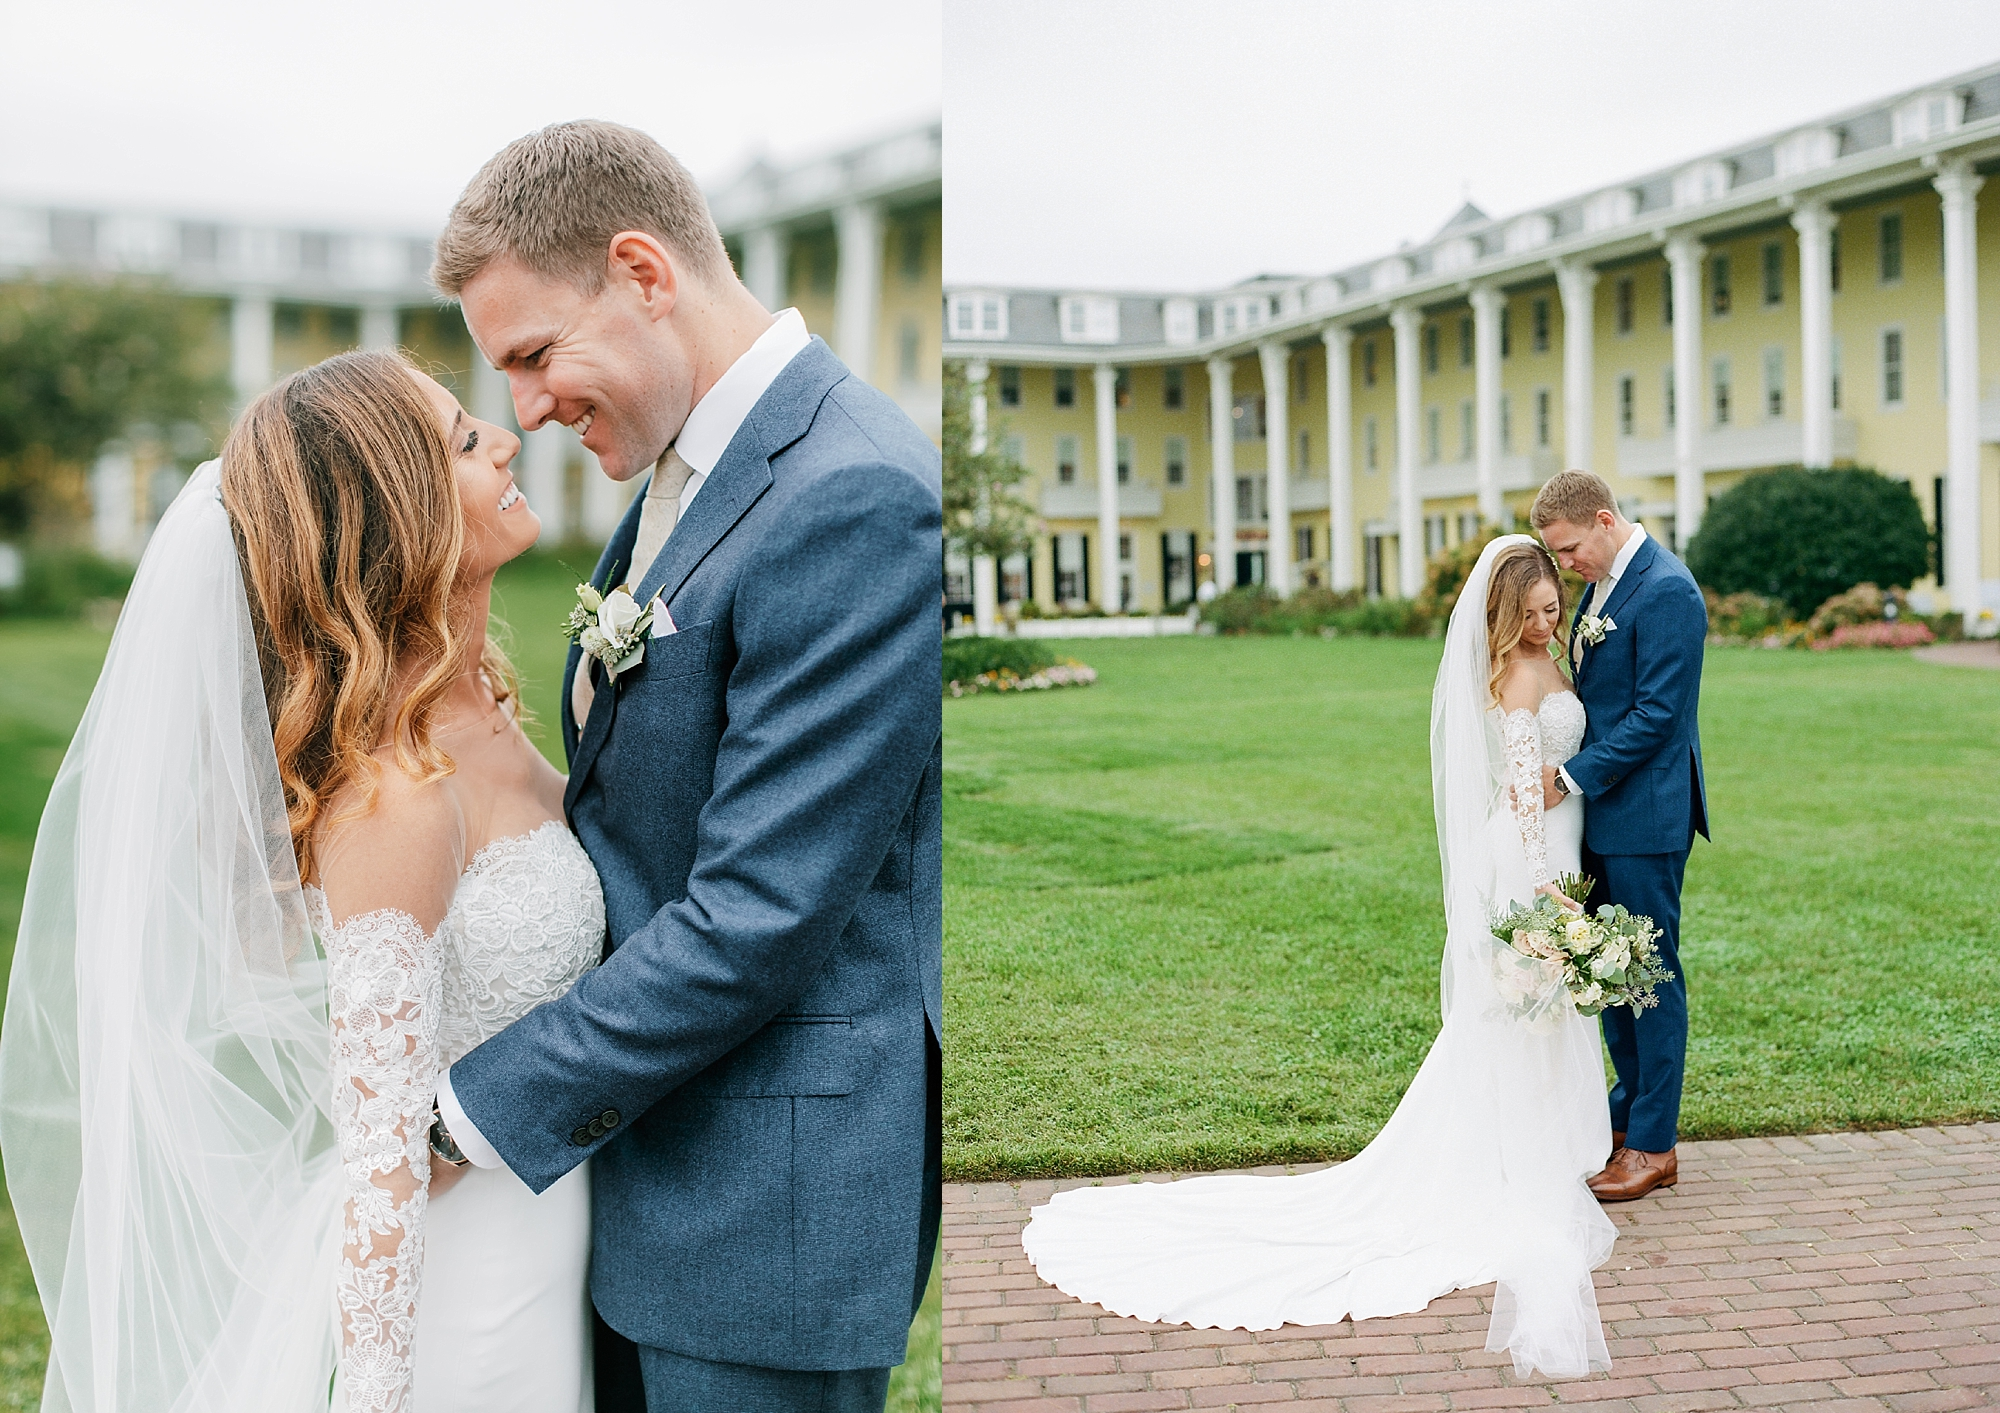 Intimate and Joyful Wedding Photography in Cape May NJ by Magdalena Studios 0014 4